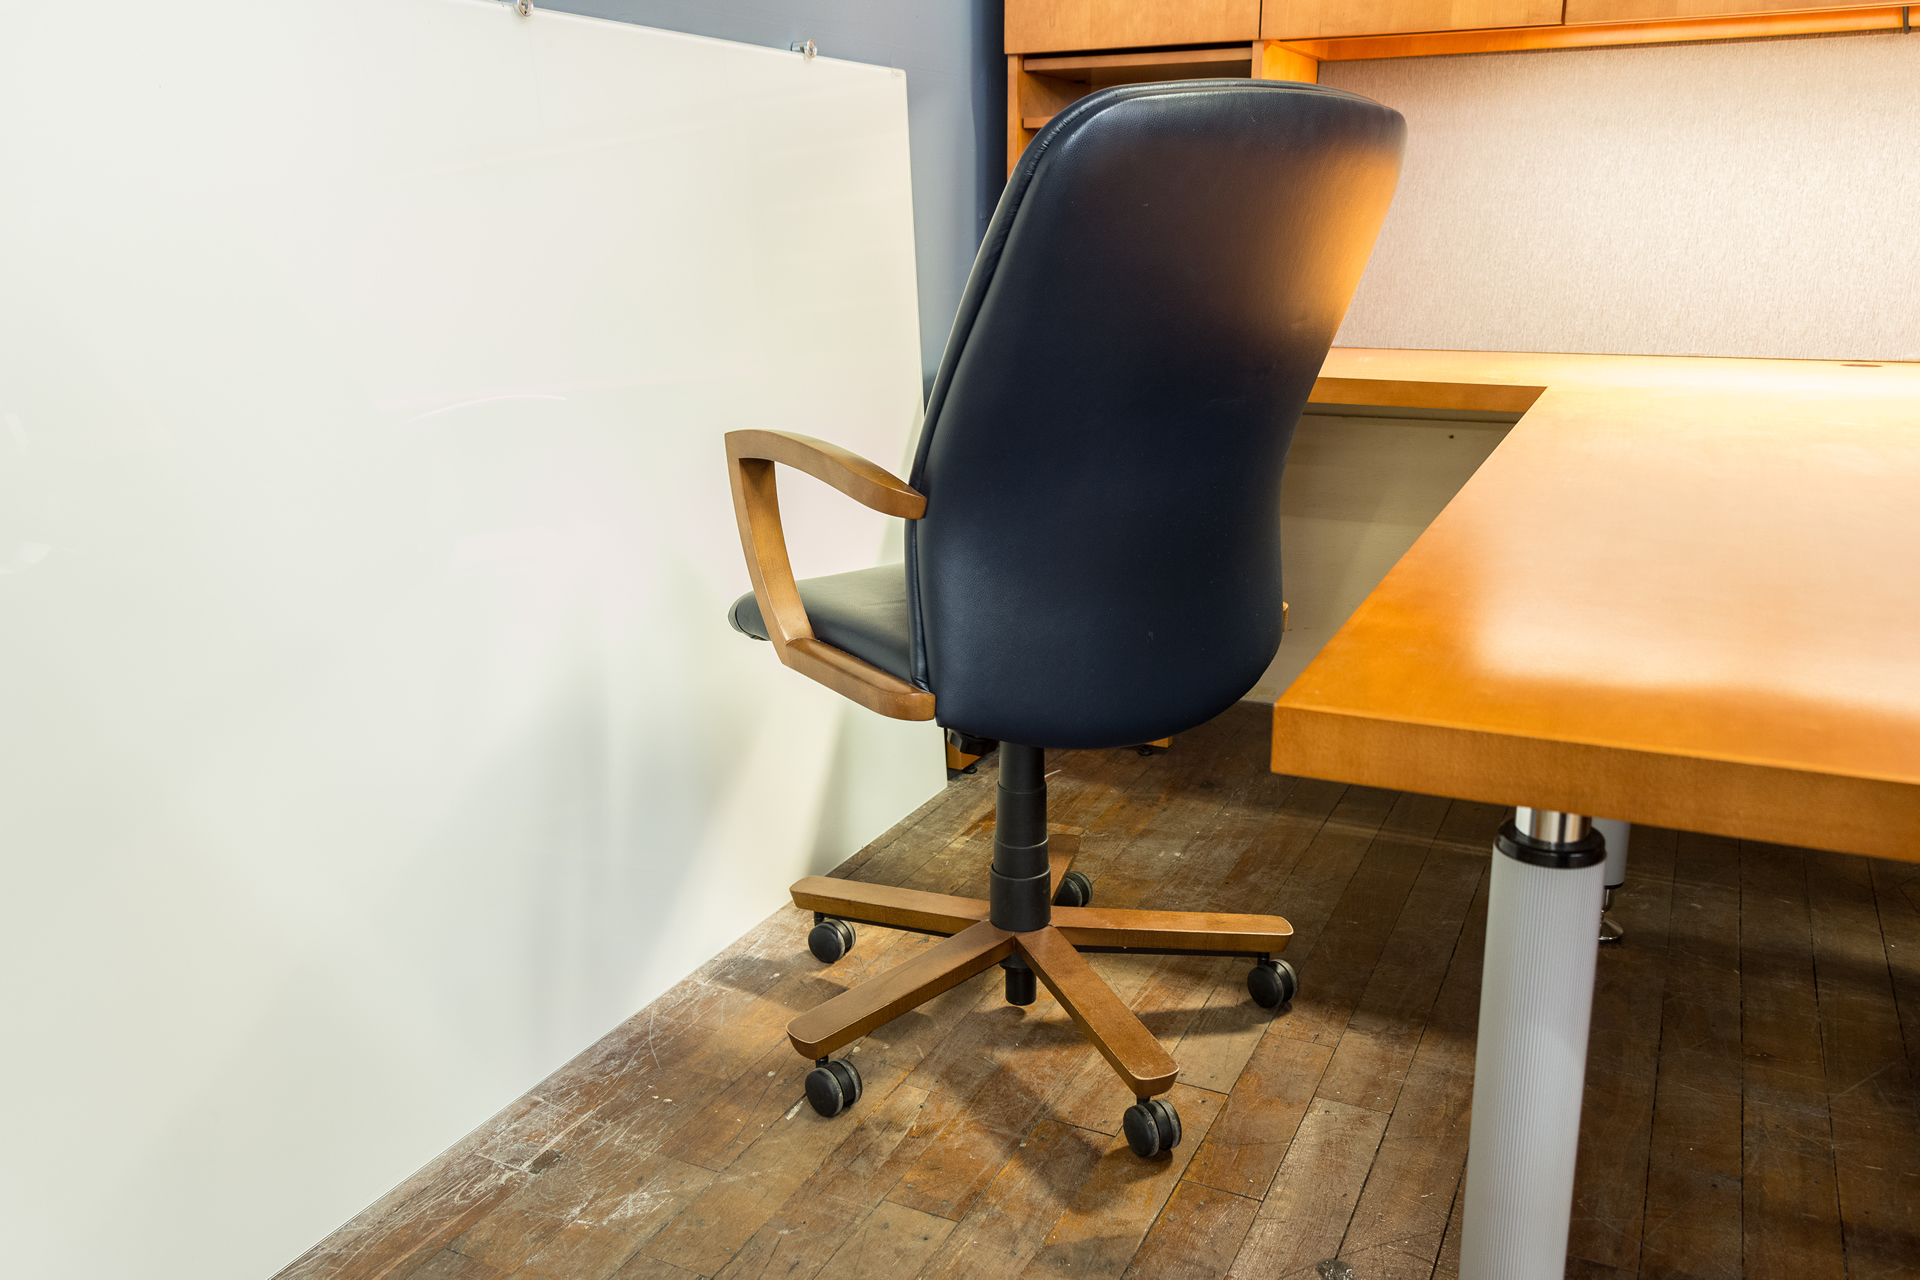 peartreeofficefurniture_peartreeofficefurniture_peartreeofficefurniture_kimball-triumph-leather-executive-conference-chairs-5.jpg